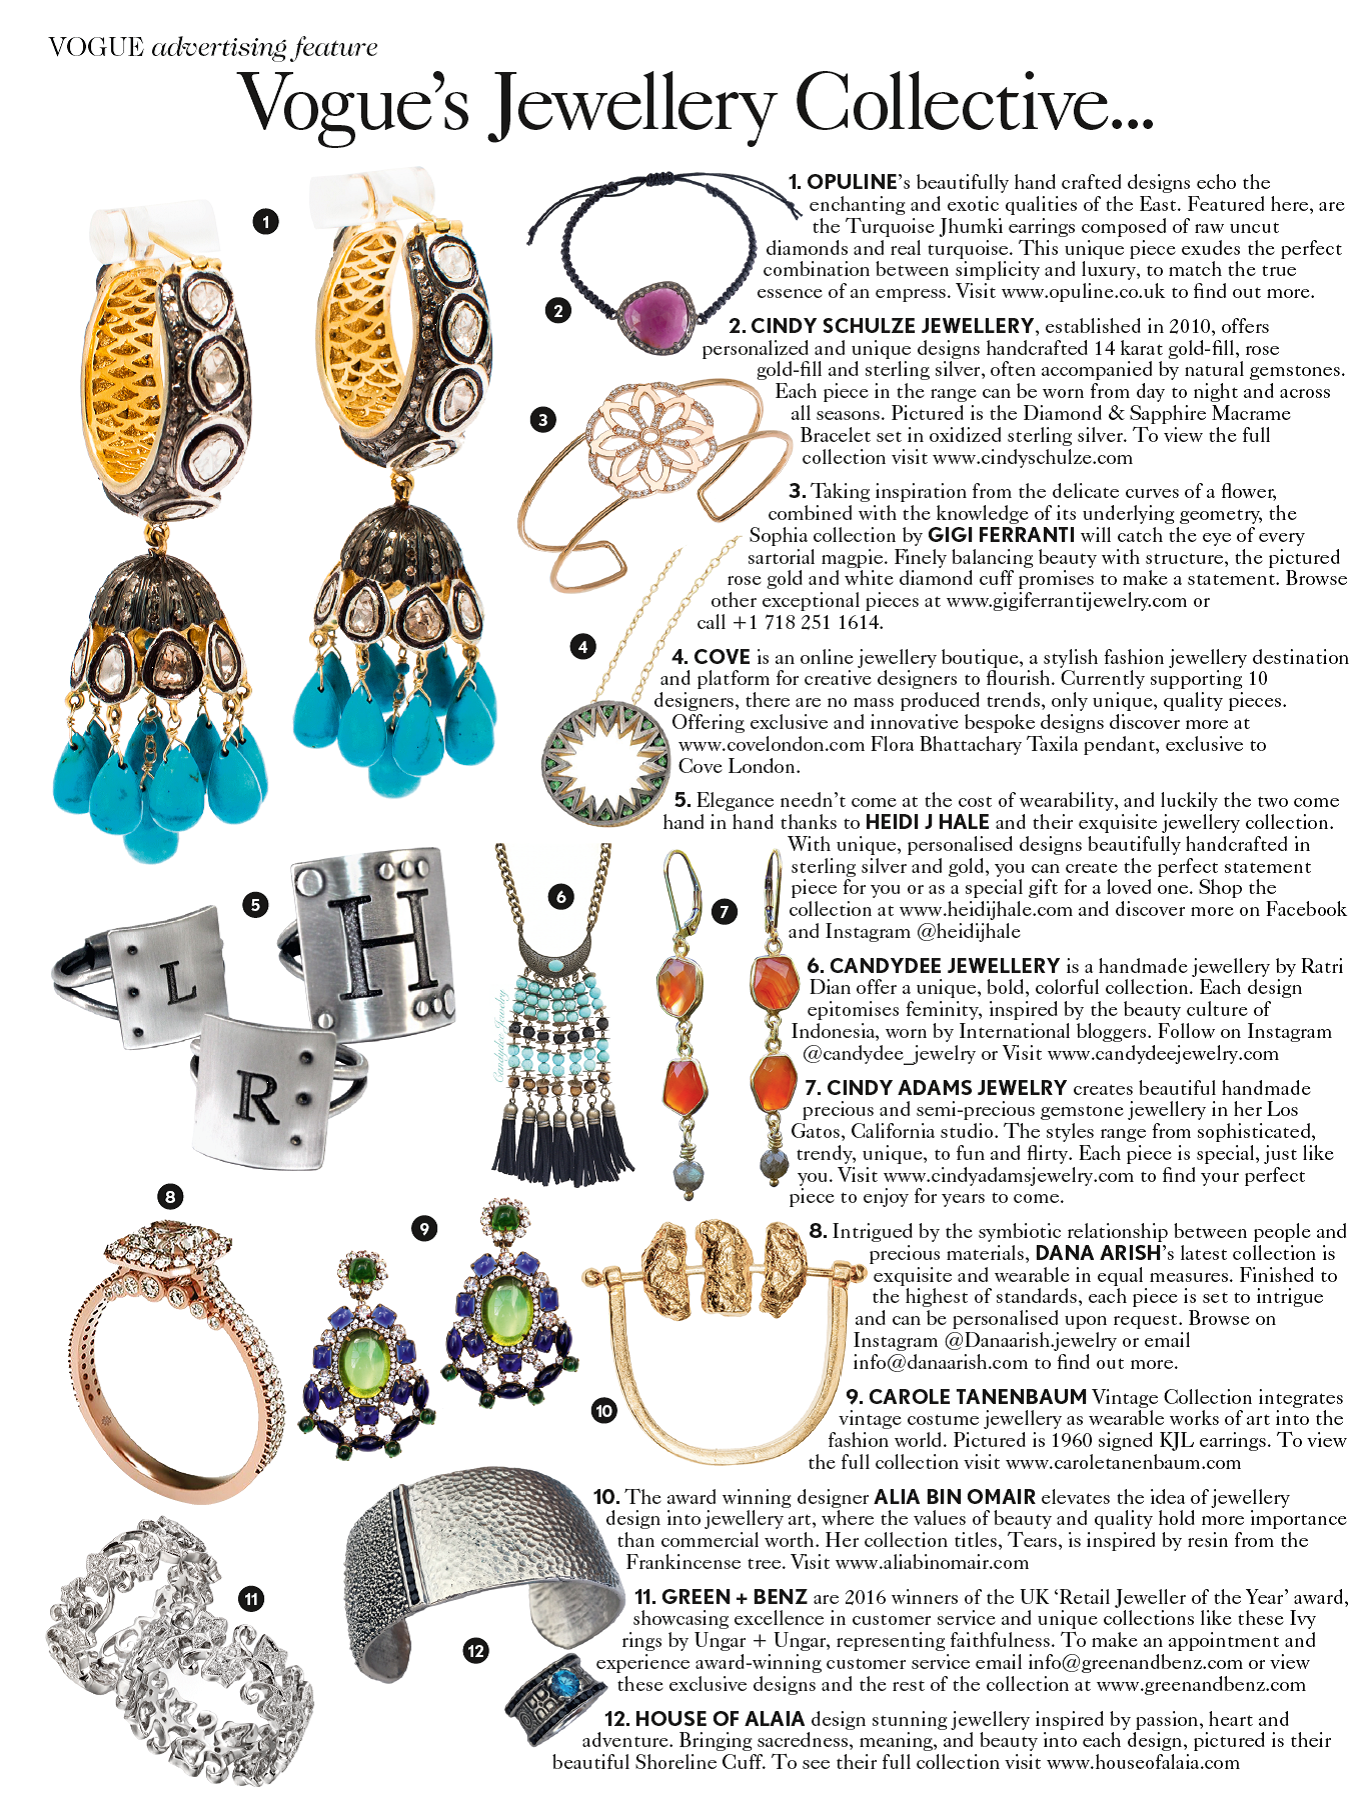 378-vogue-s-jewellery-collective.png